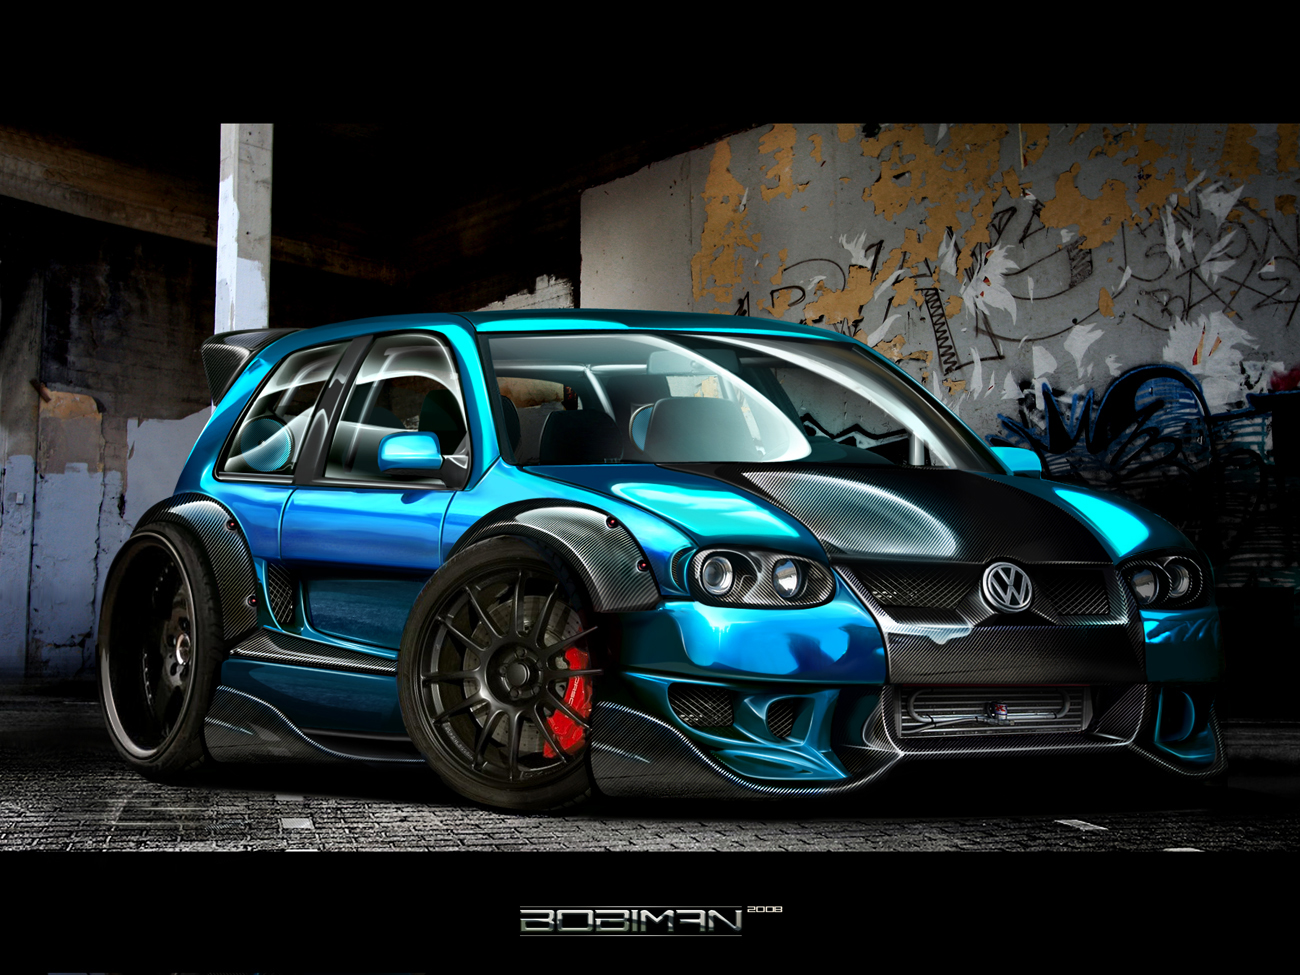 car wallpaper,nice car wallpapers,nice car wallpaper pictures,nice car ...